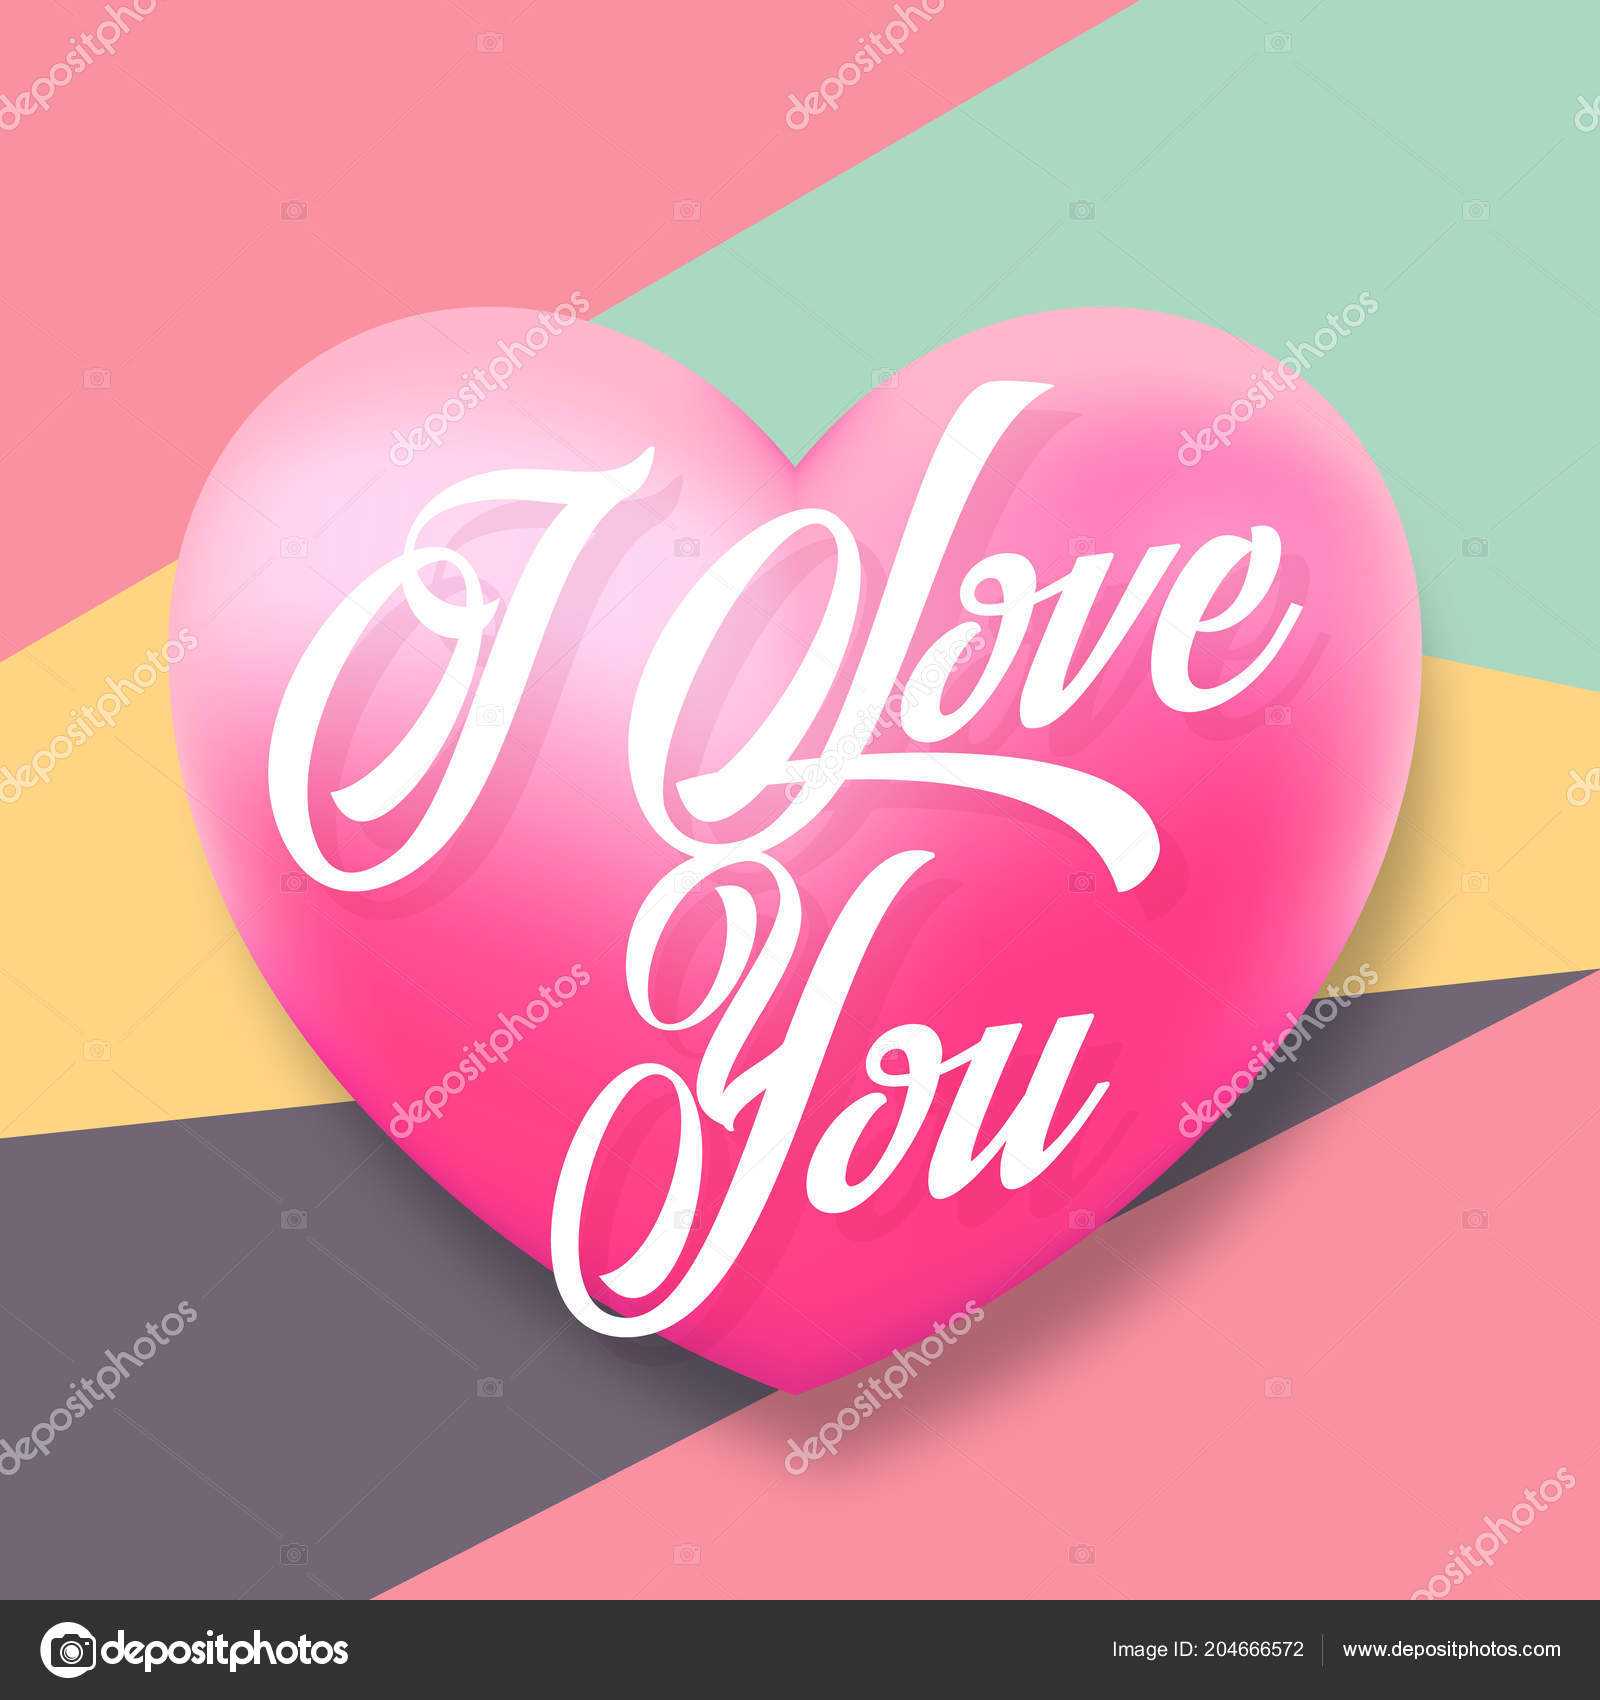 Gentle Typography Valentines Day Vector Greetings With Pink Heart